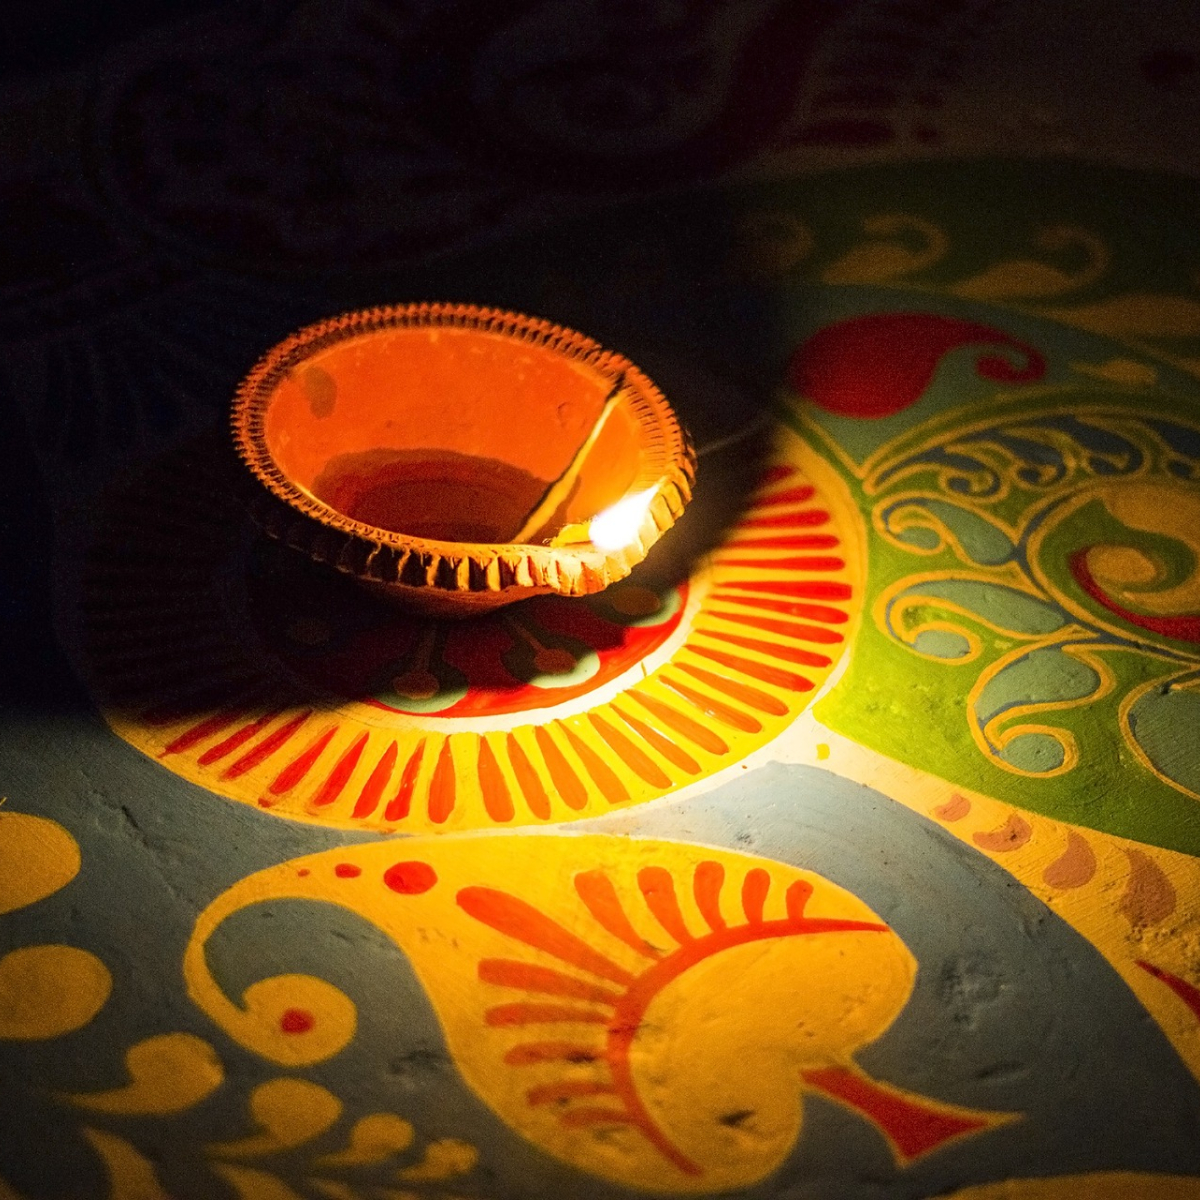 Diwali 2019: 7 simple tips and tricks to have a safe and healthy Deepawali